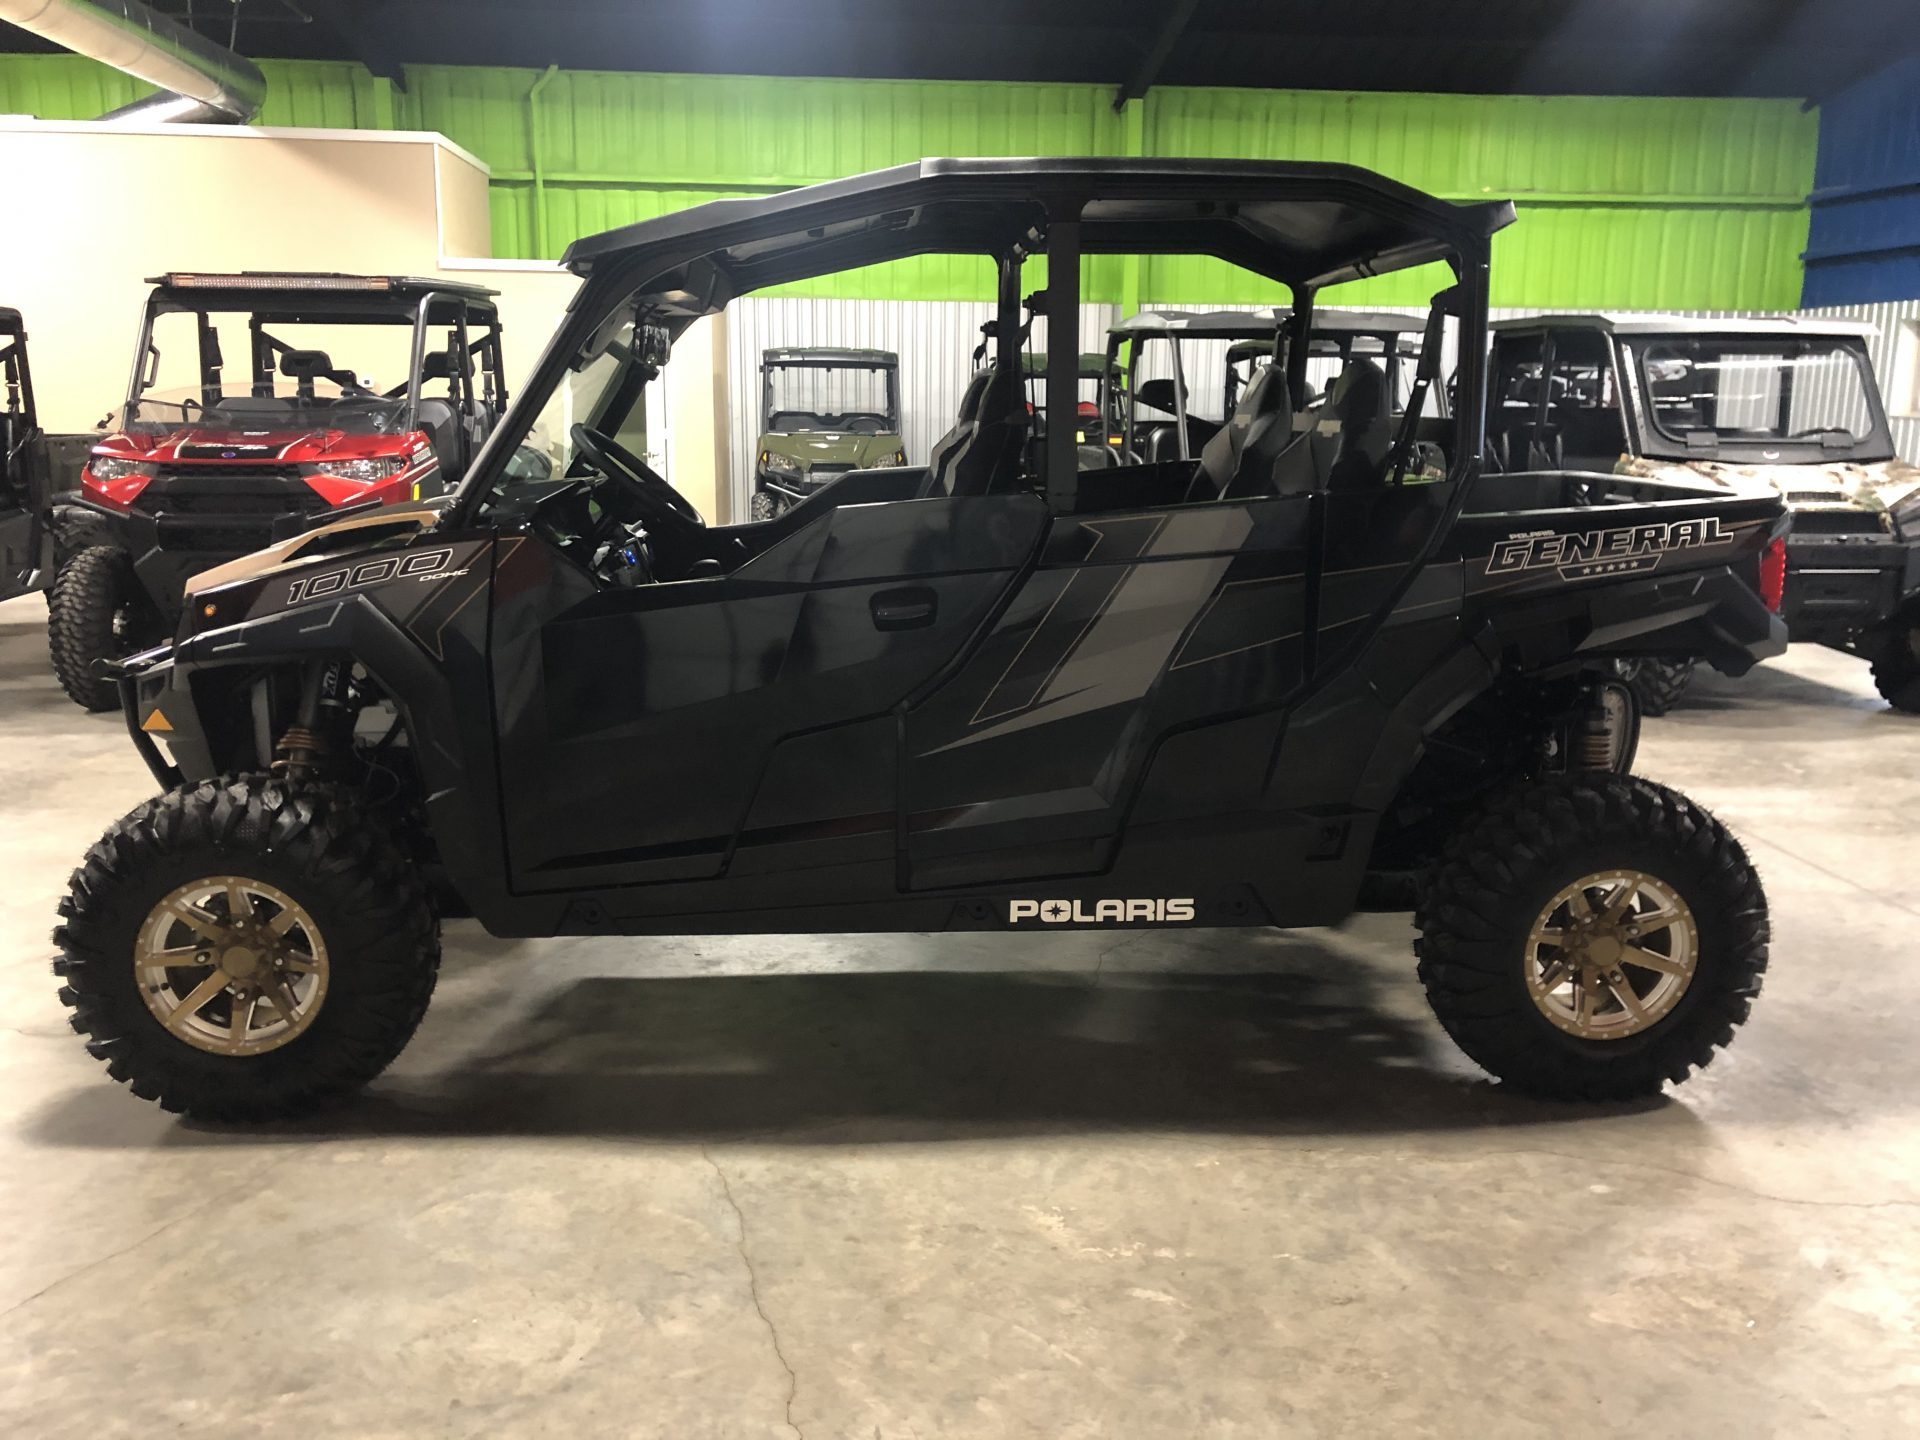 2019 Polaris General 1000 Ride Command Image